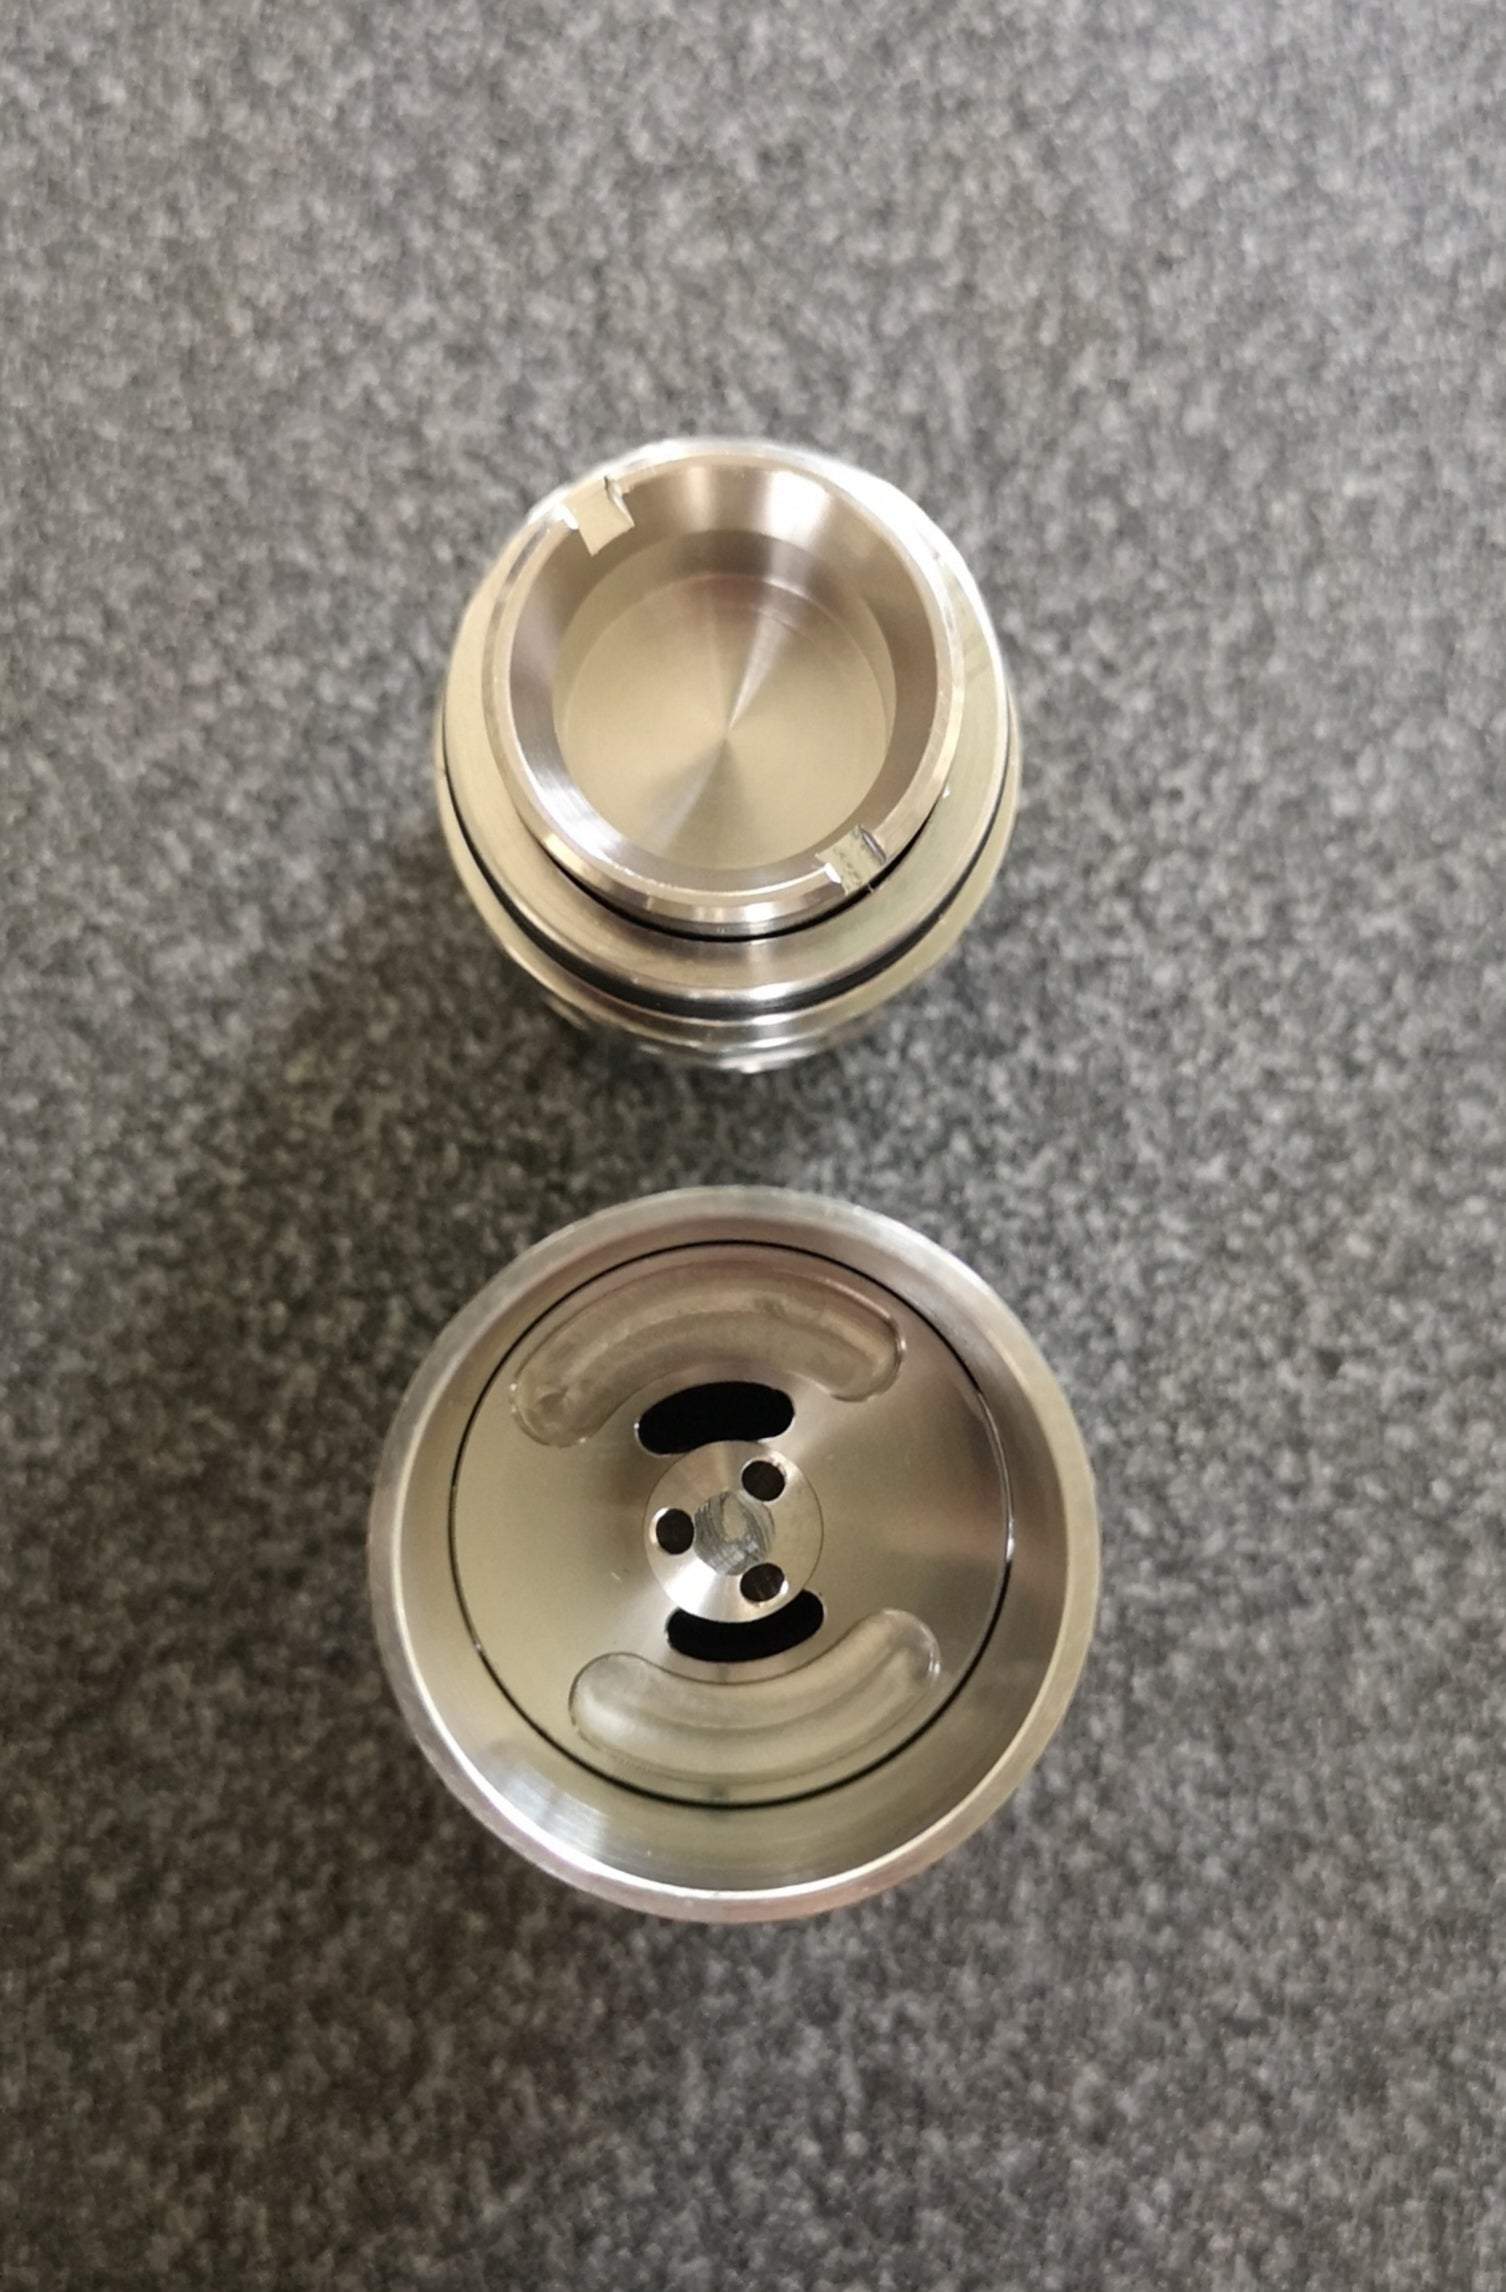 New Sequoia Atomizer by HVT in SS - Internal Airflow and Bucket Image